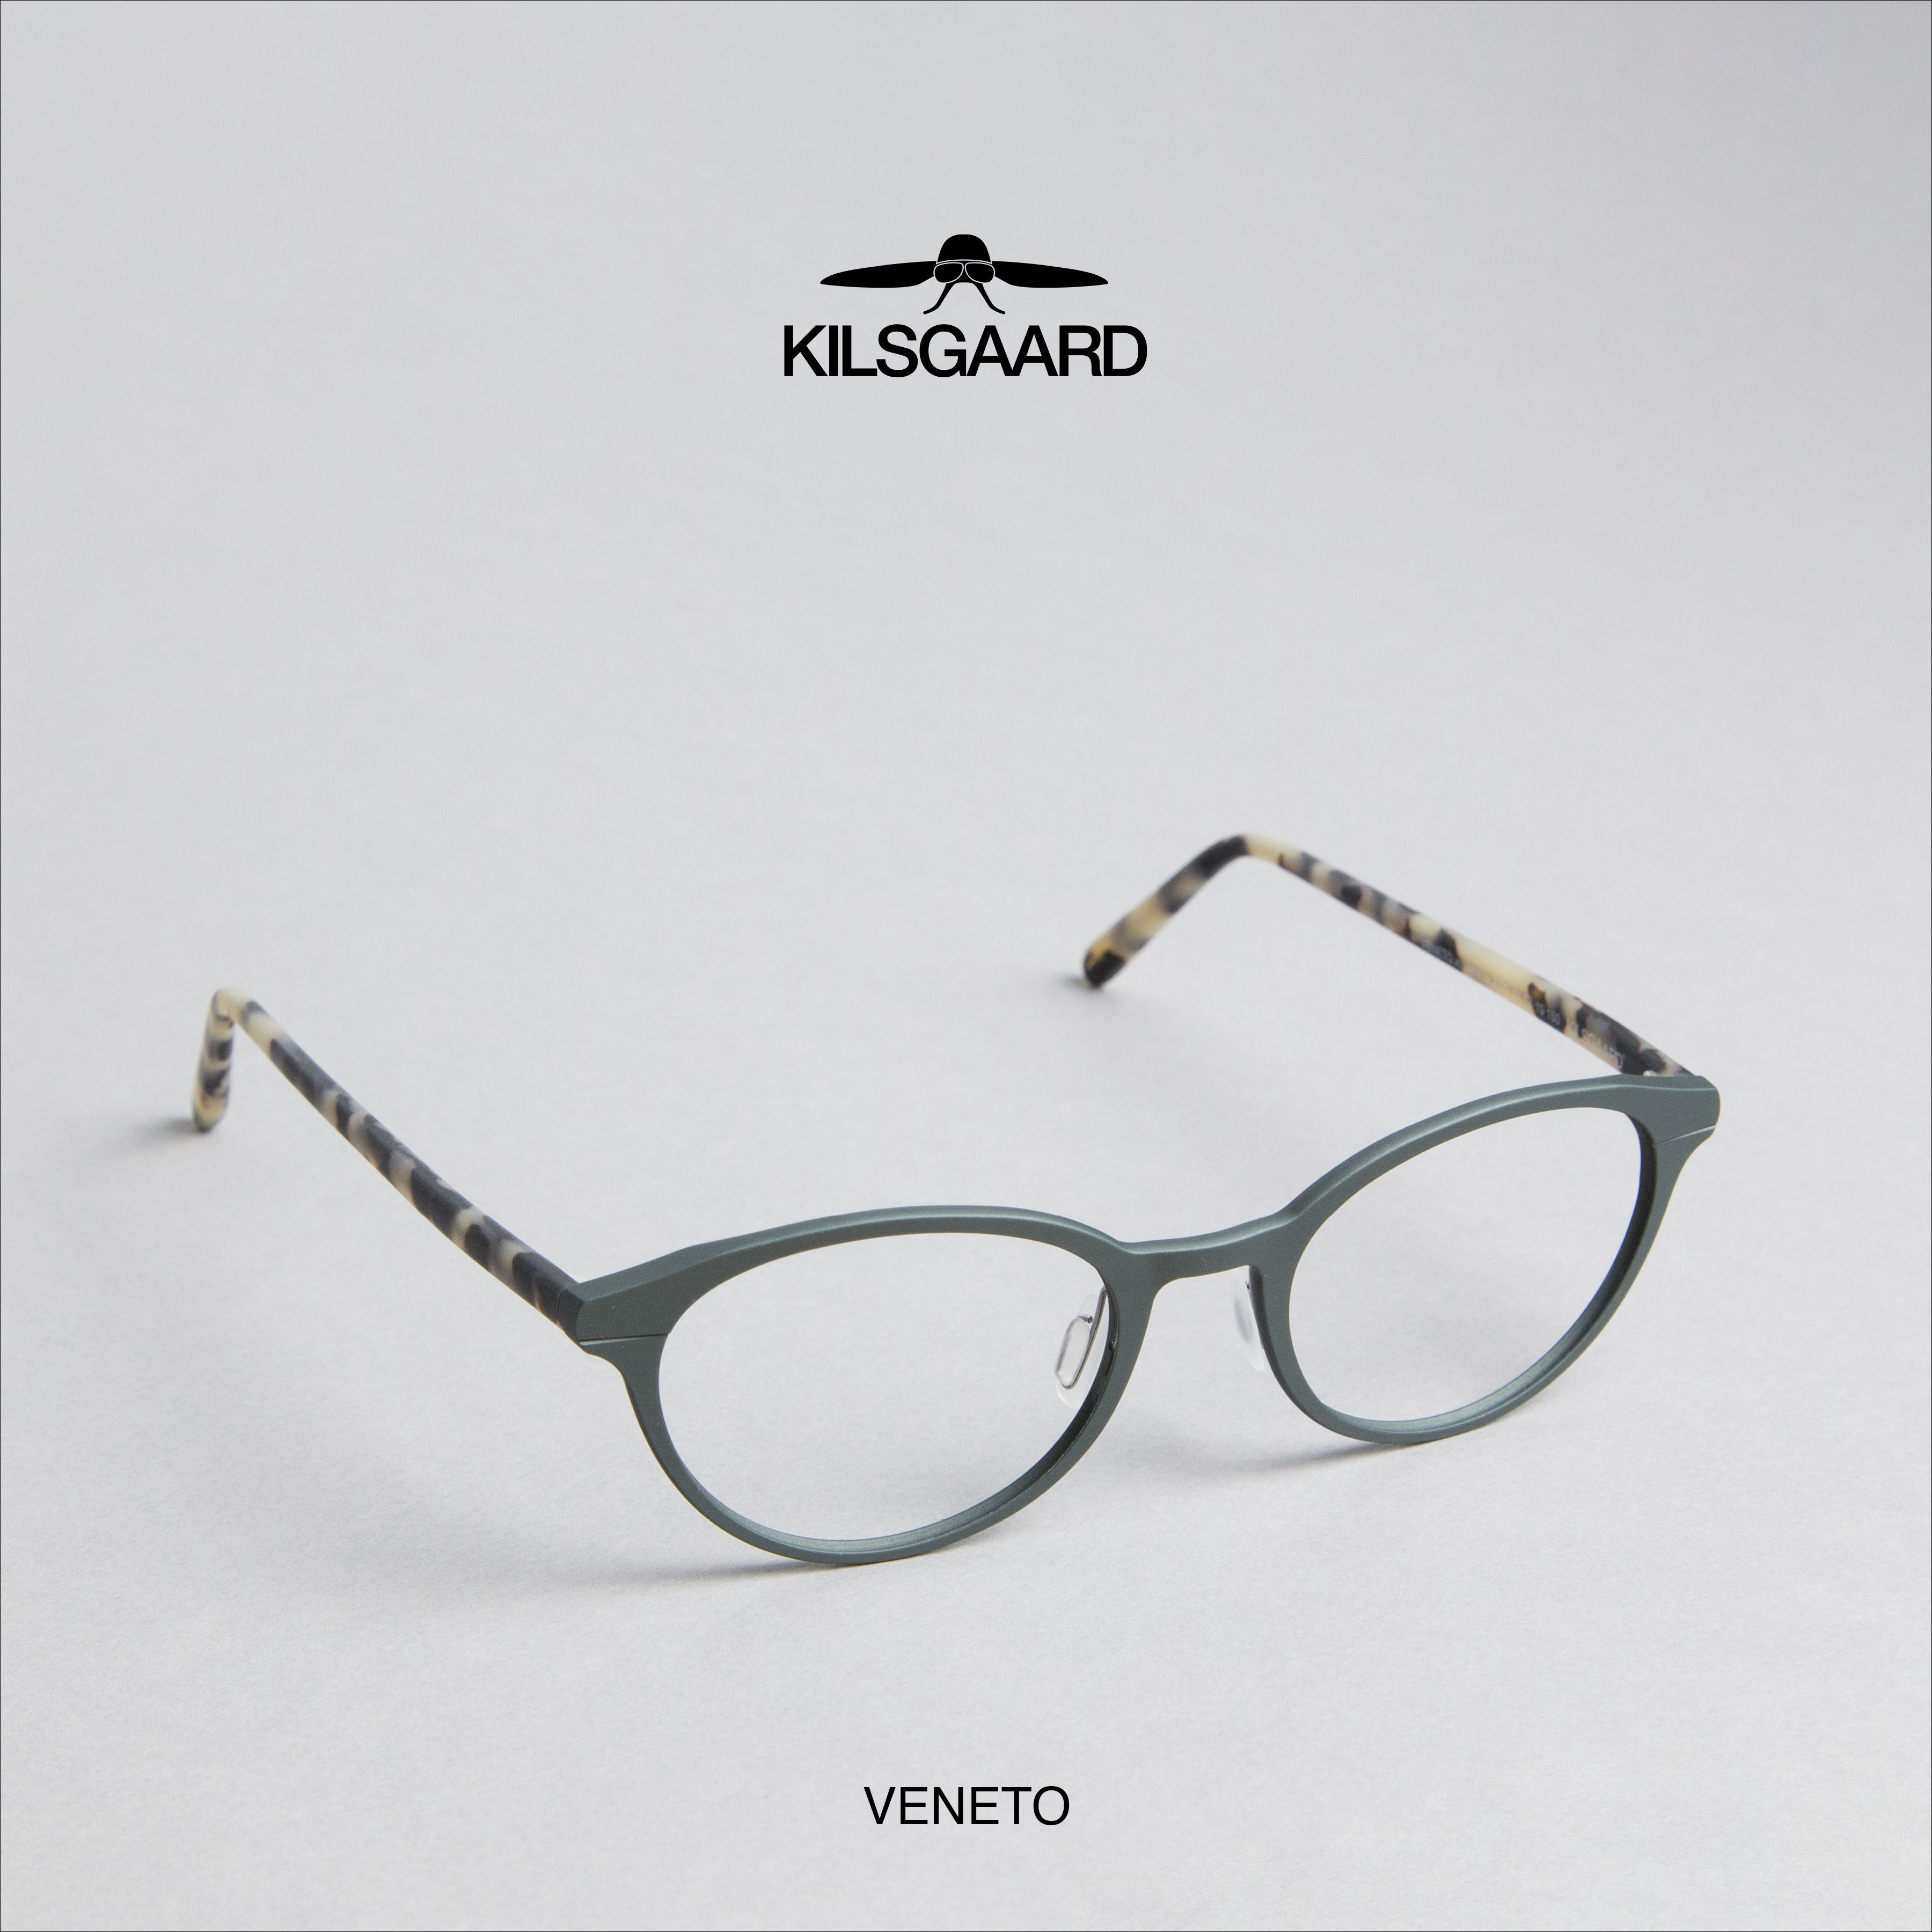 144c214178ac The aluminum collection from Kilsgaard is strong